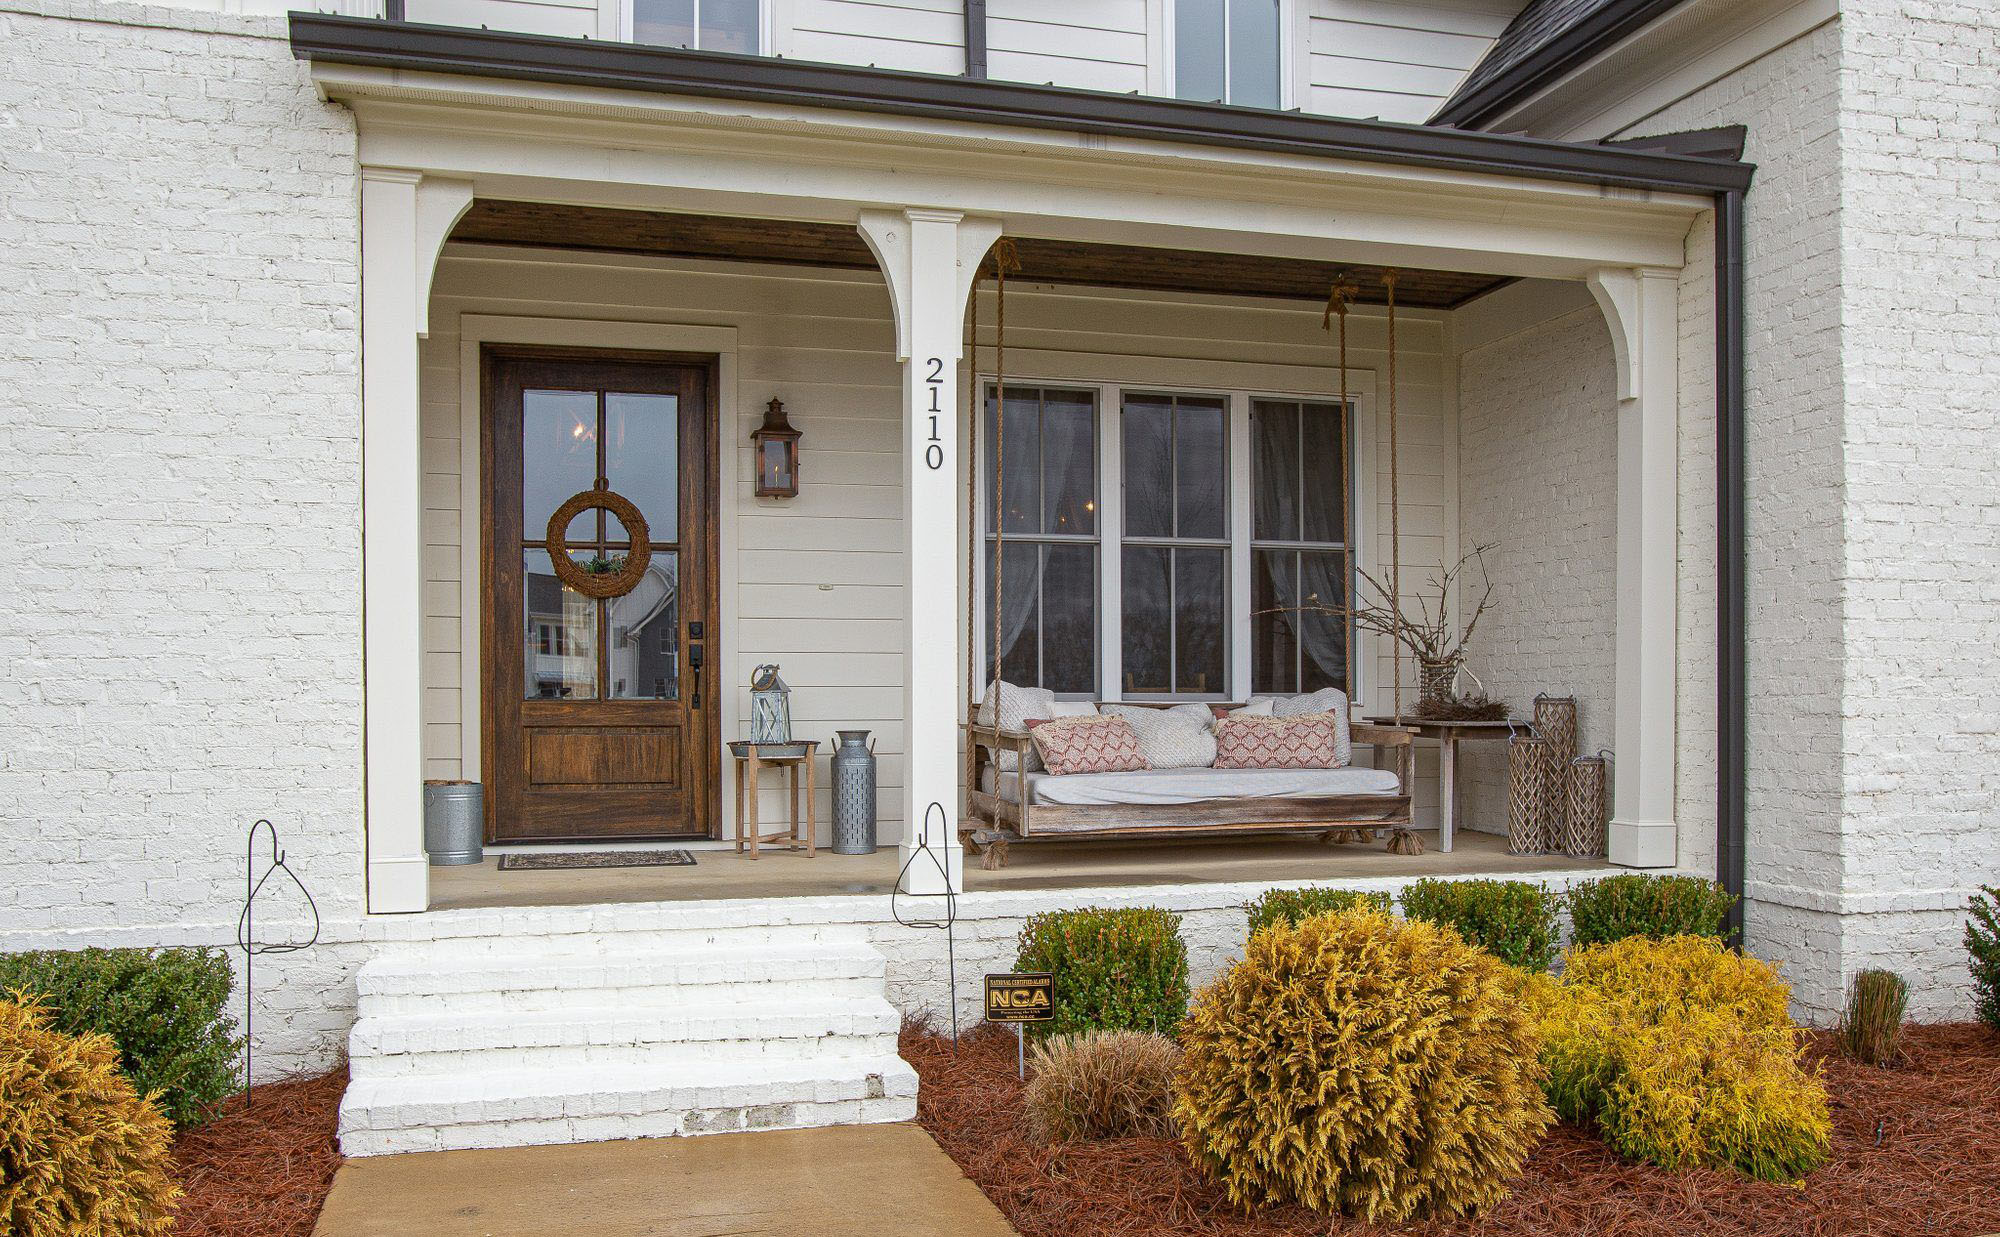 Closeup view of a brick home painted white. Country front porch with a real wood front door, wood ceiling and a wood bench swing.